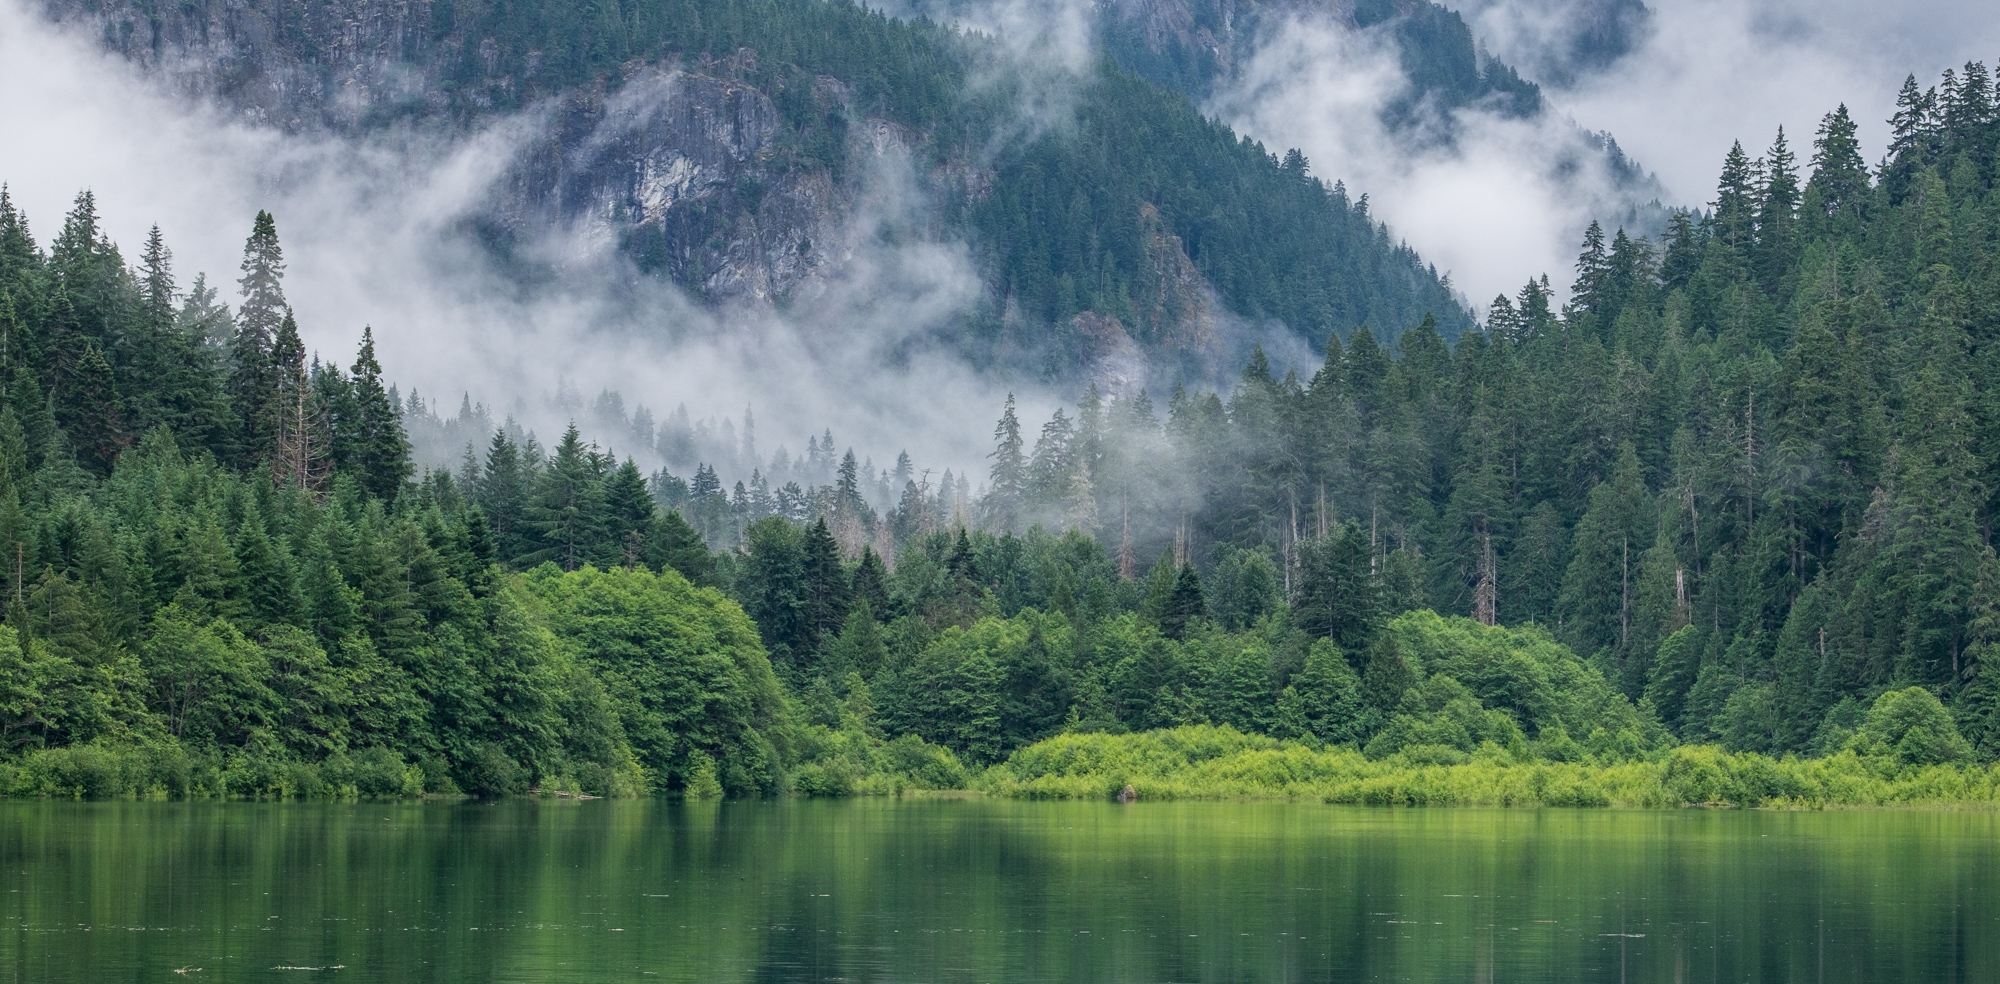 Every shade of immaculate green can be found in the North Cascades — it's a never ending deep breath of the cleanest, greenest air!